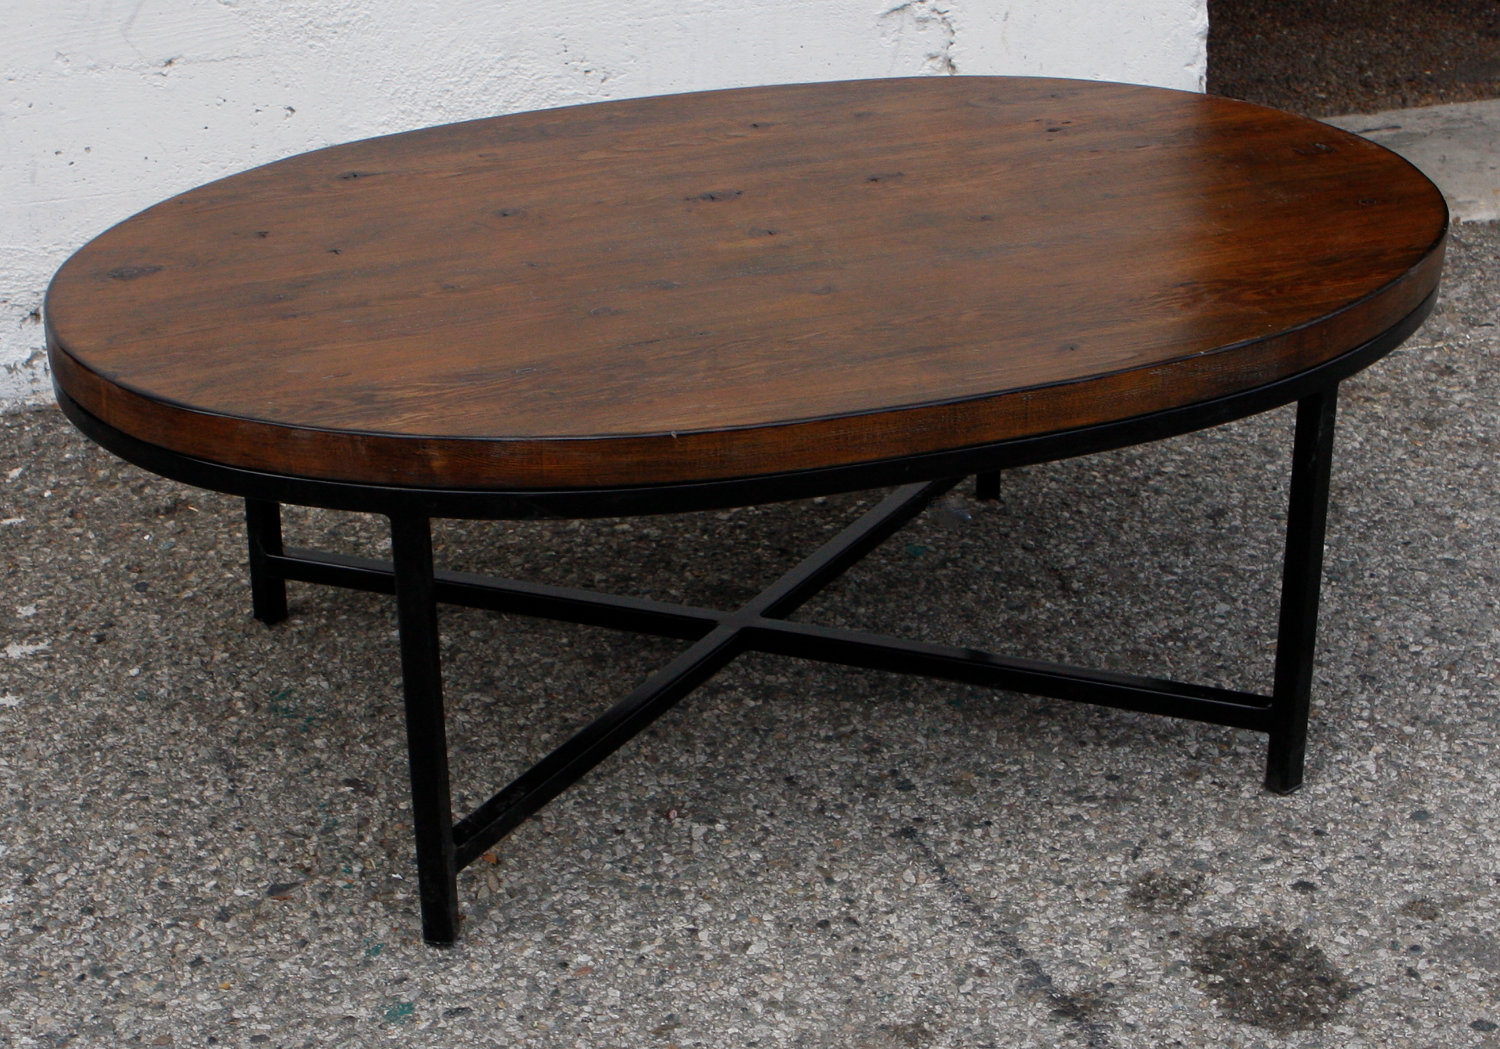 Dark Wood Coffee Table With Iron Base Image And Description